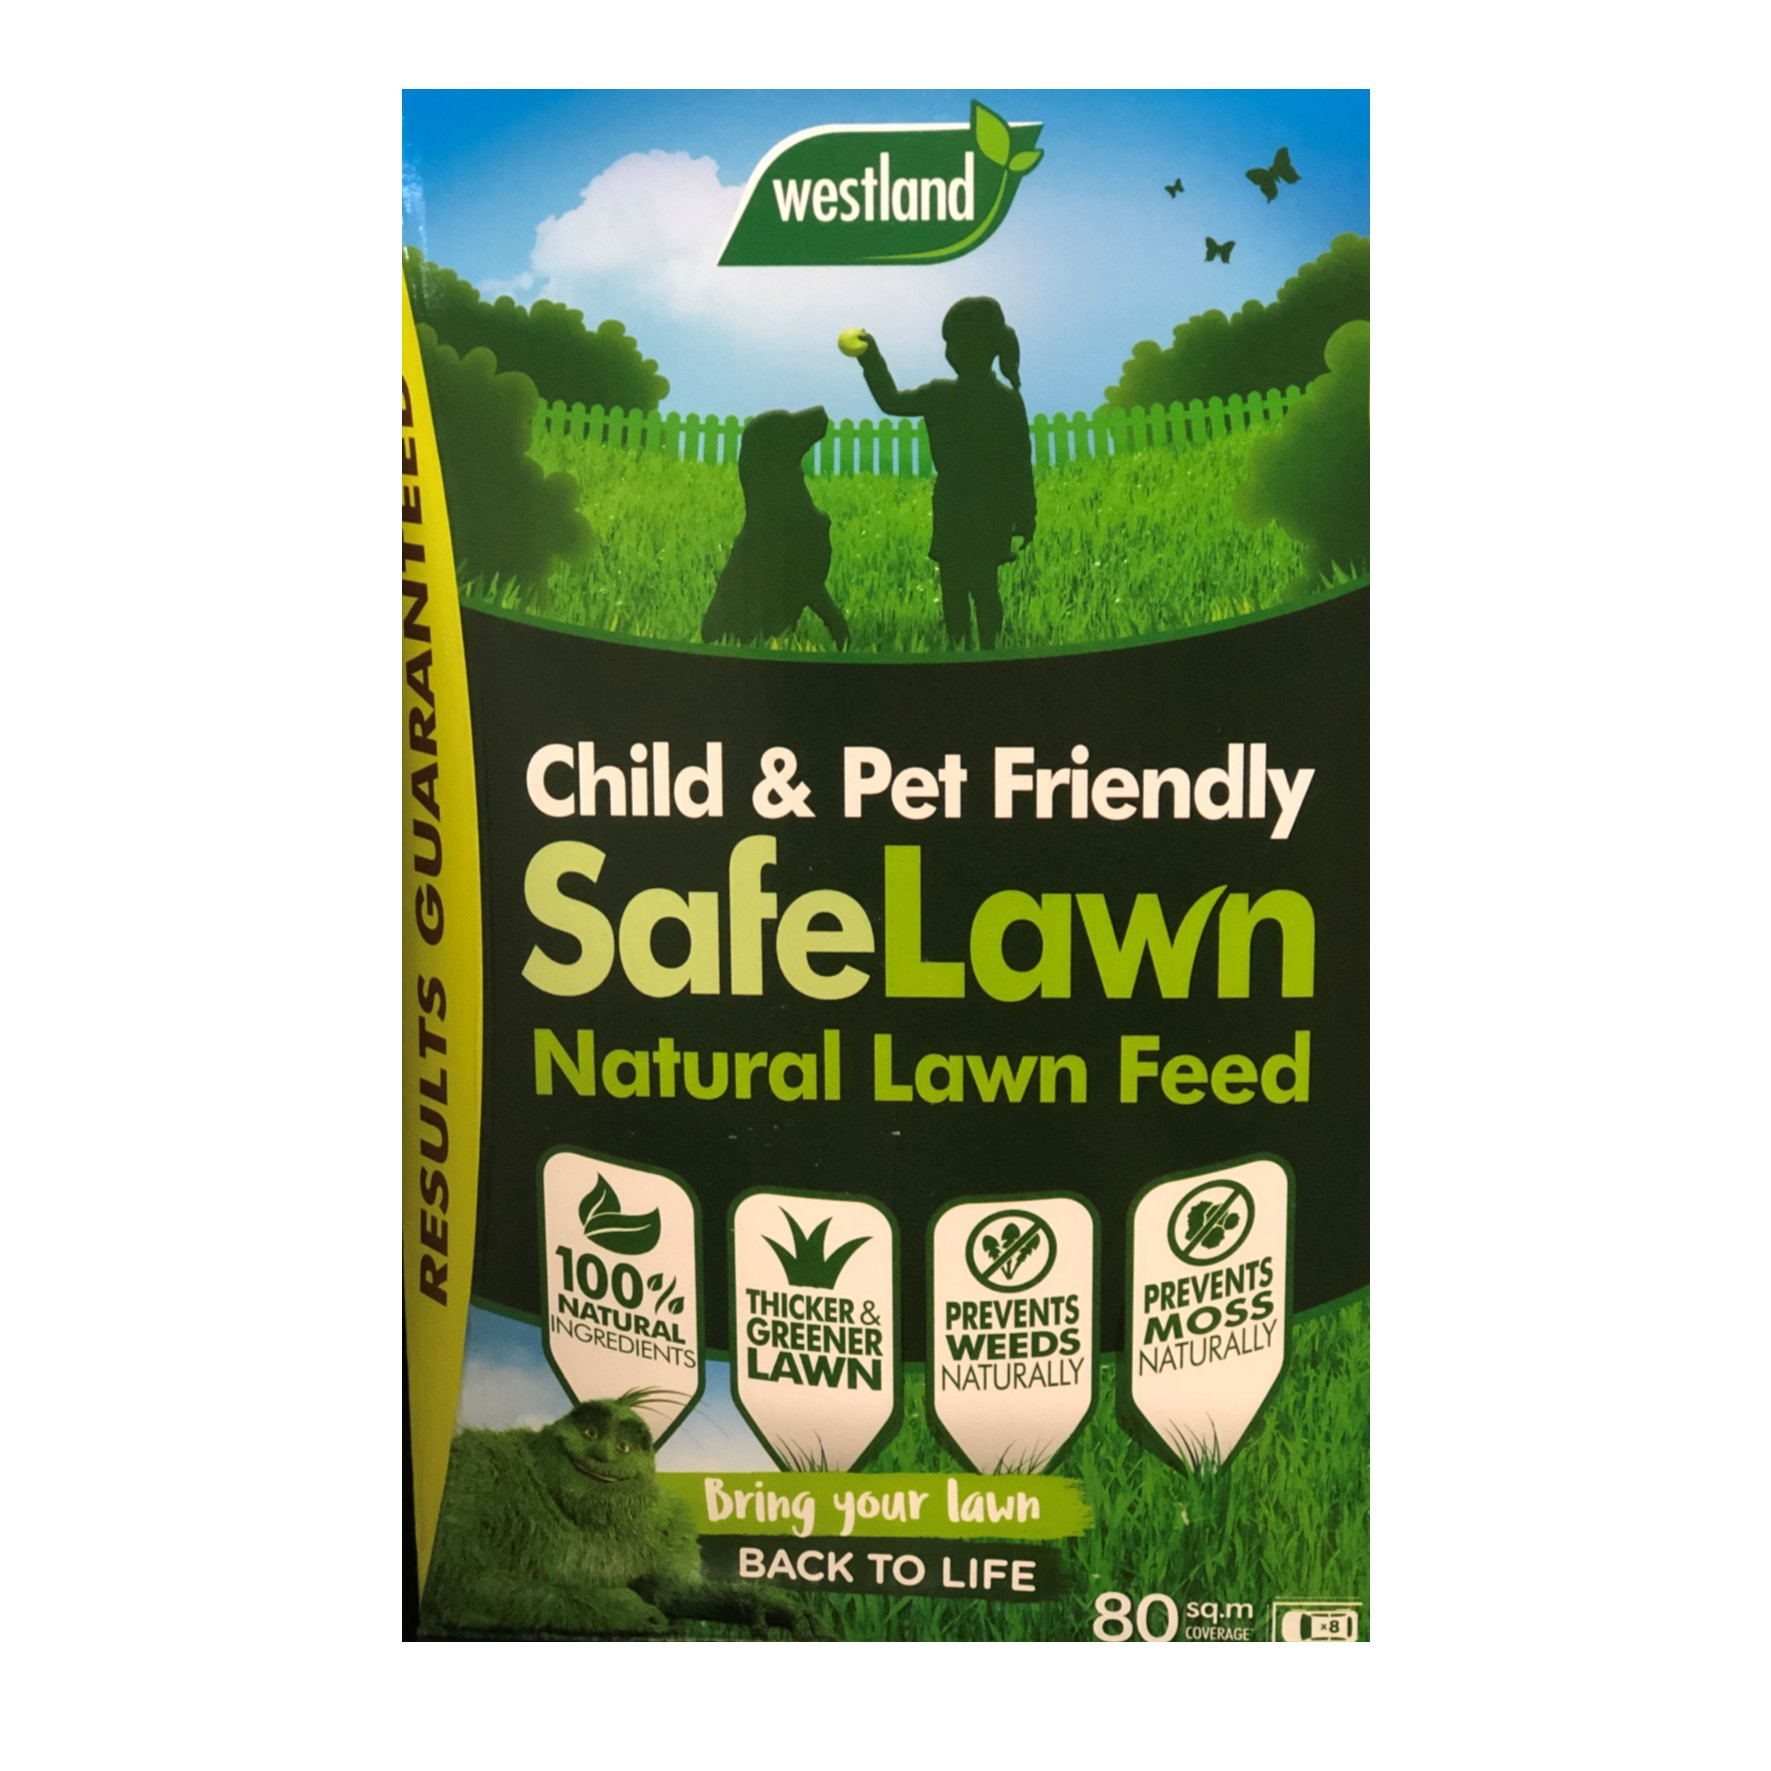 Child & Pet Friendly Lawn Feed